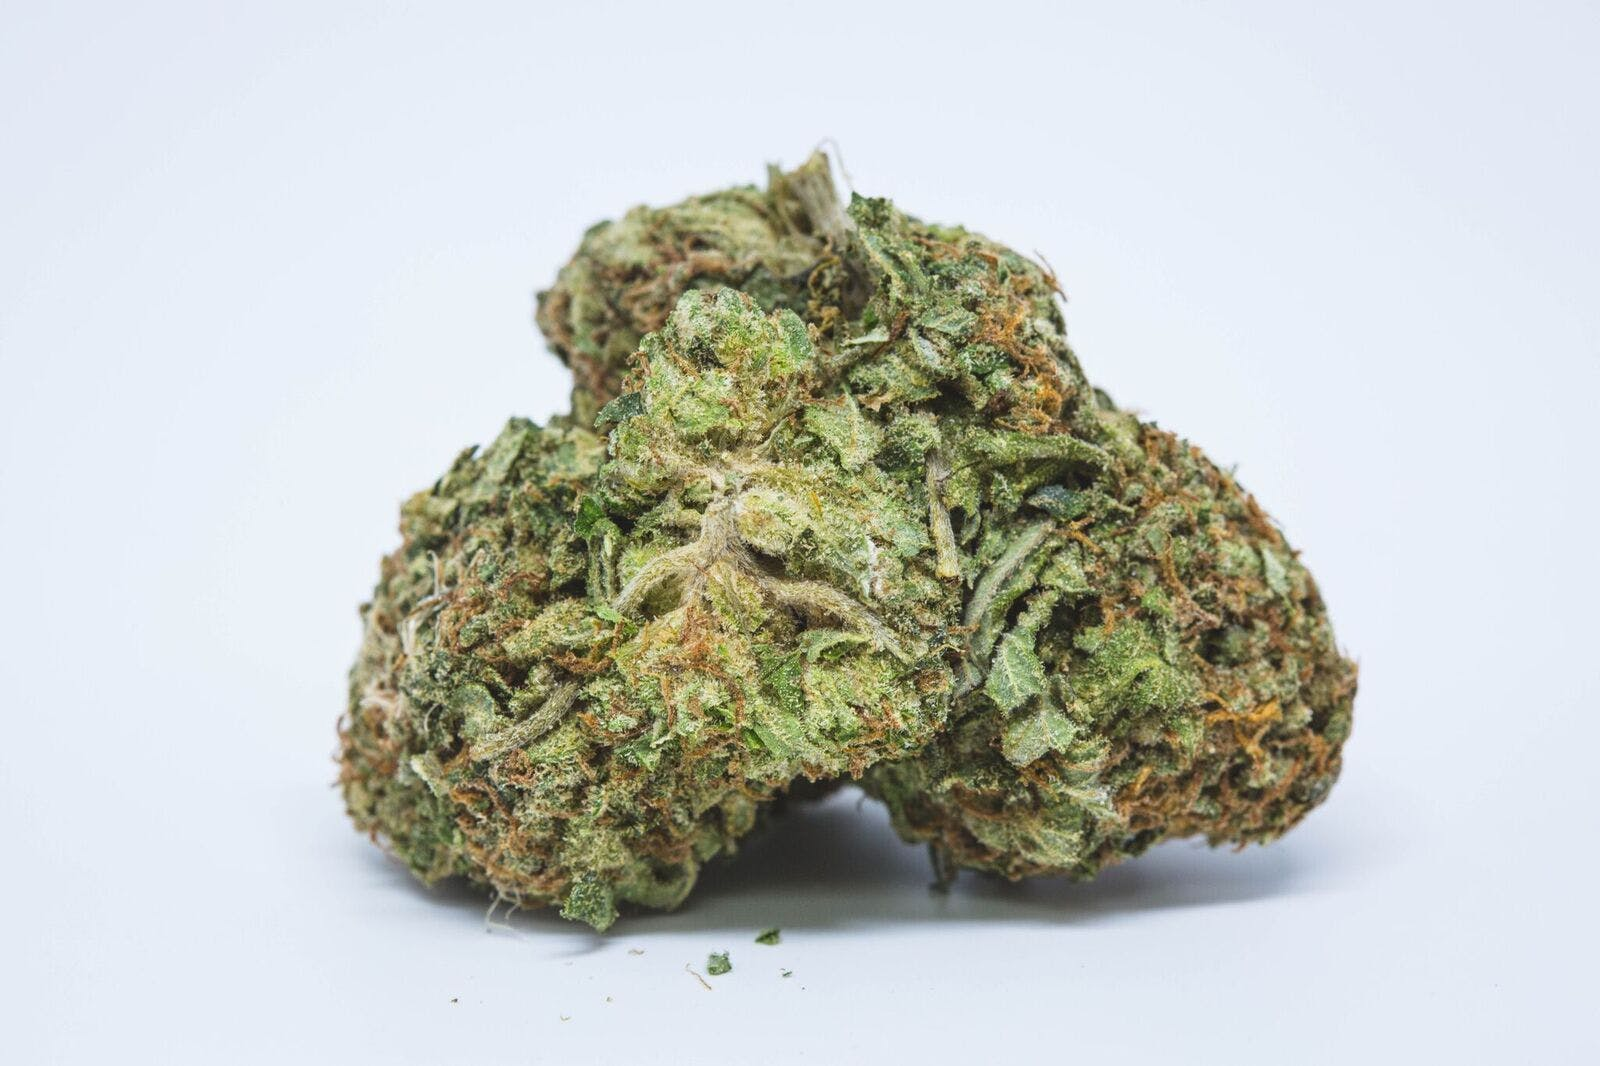 Cataract Kush Weed; Cataract Kush Cannabis Strain; Cataract Kush Hybrid Marijuana Strain